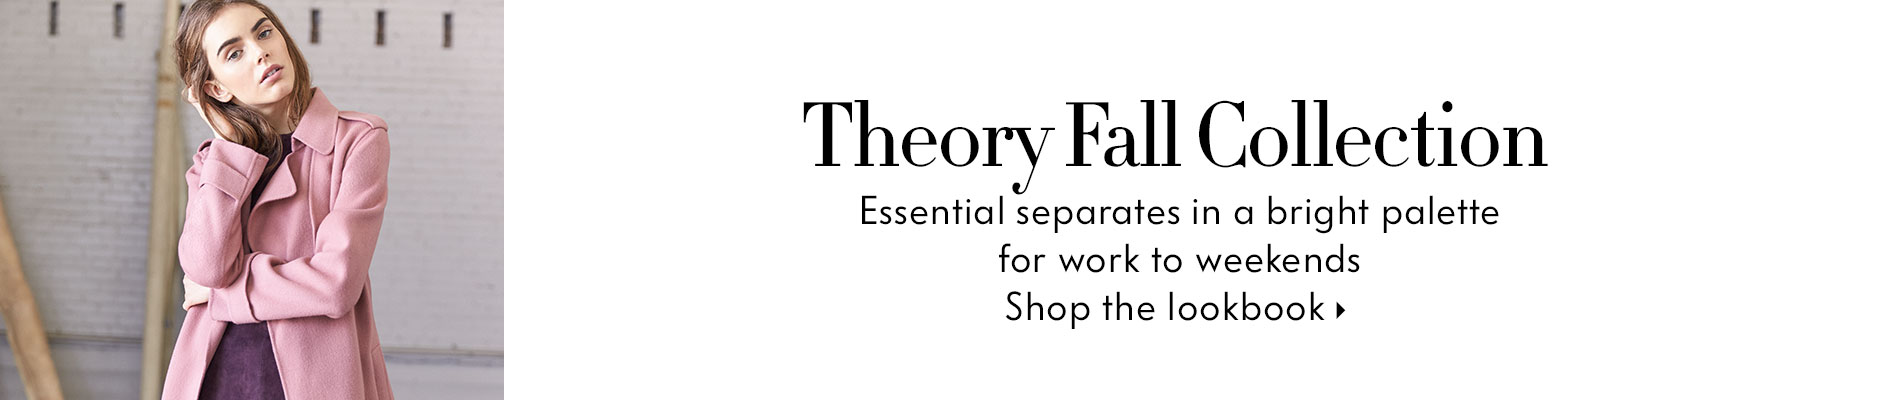 Theory Fall Collection Essential separates in a bright palette for work to weekends